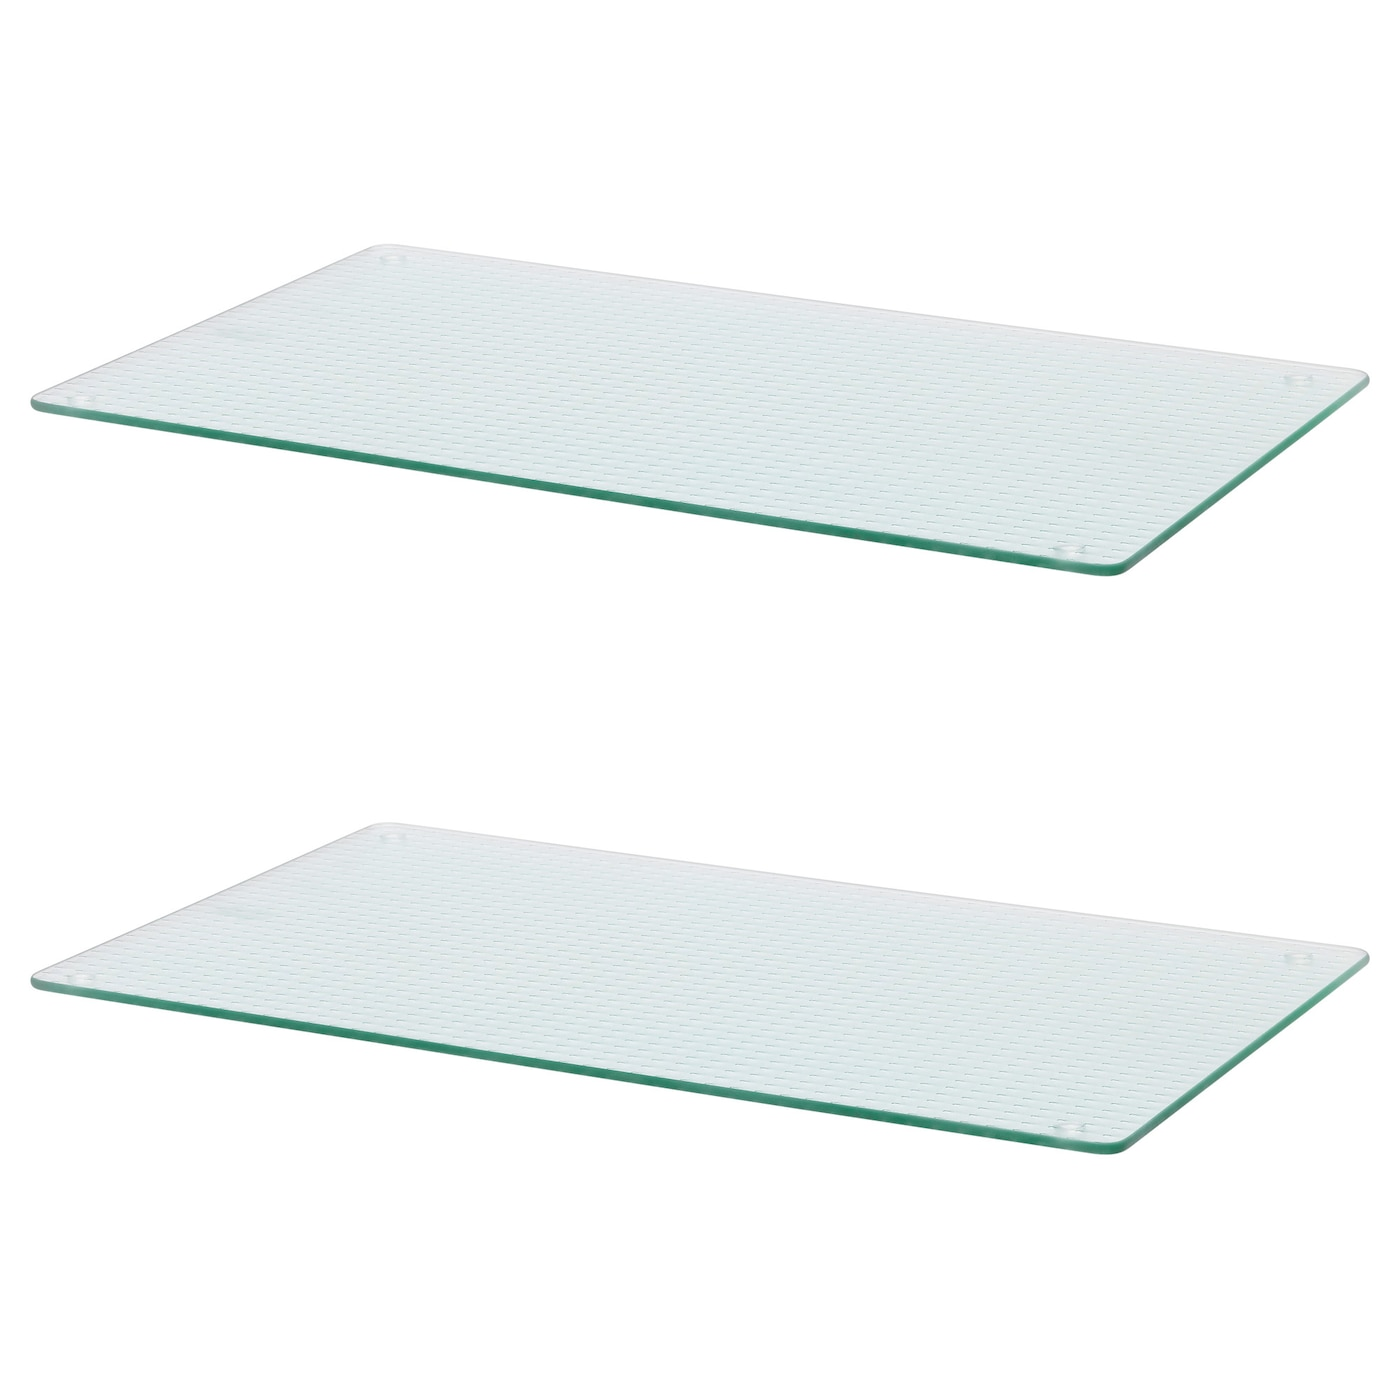 IKEA INSUG hob cover The tempered glass surface is easy to clean.